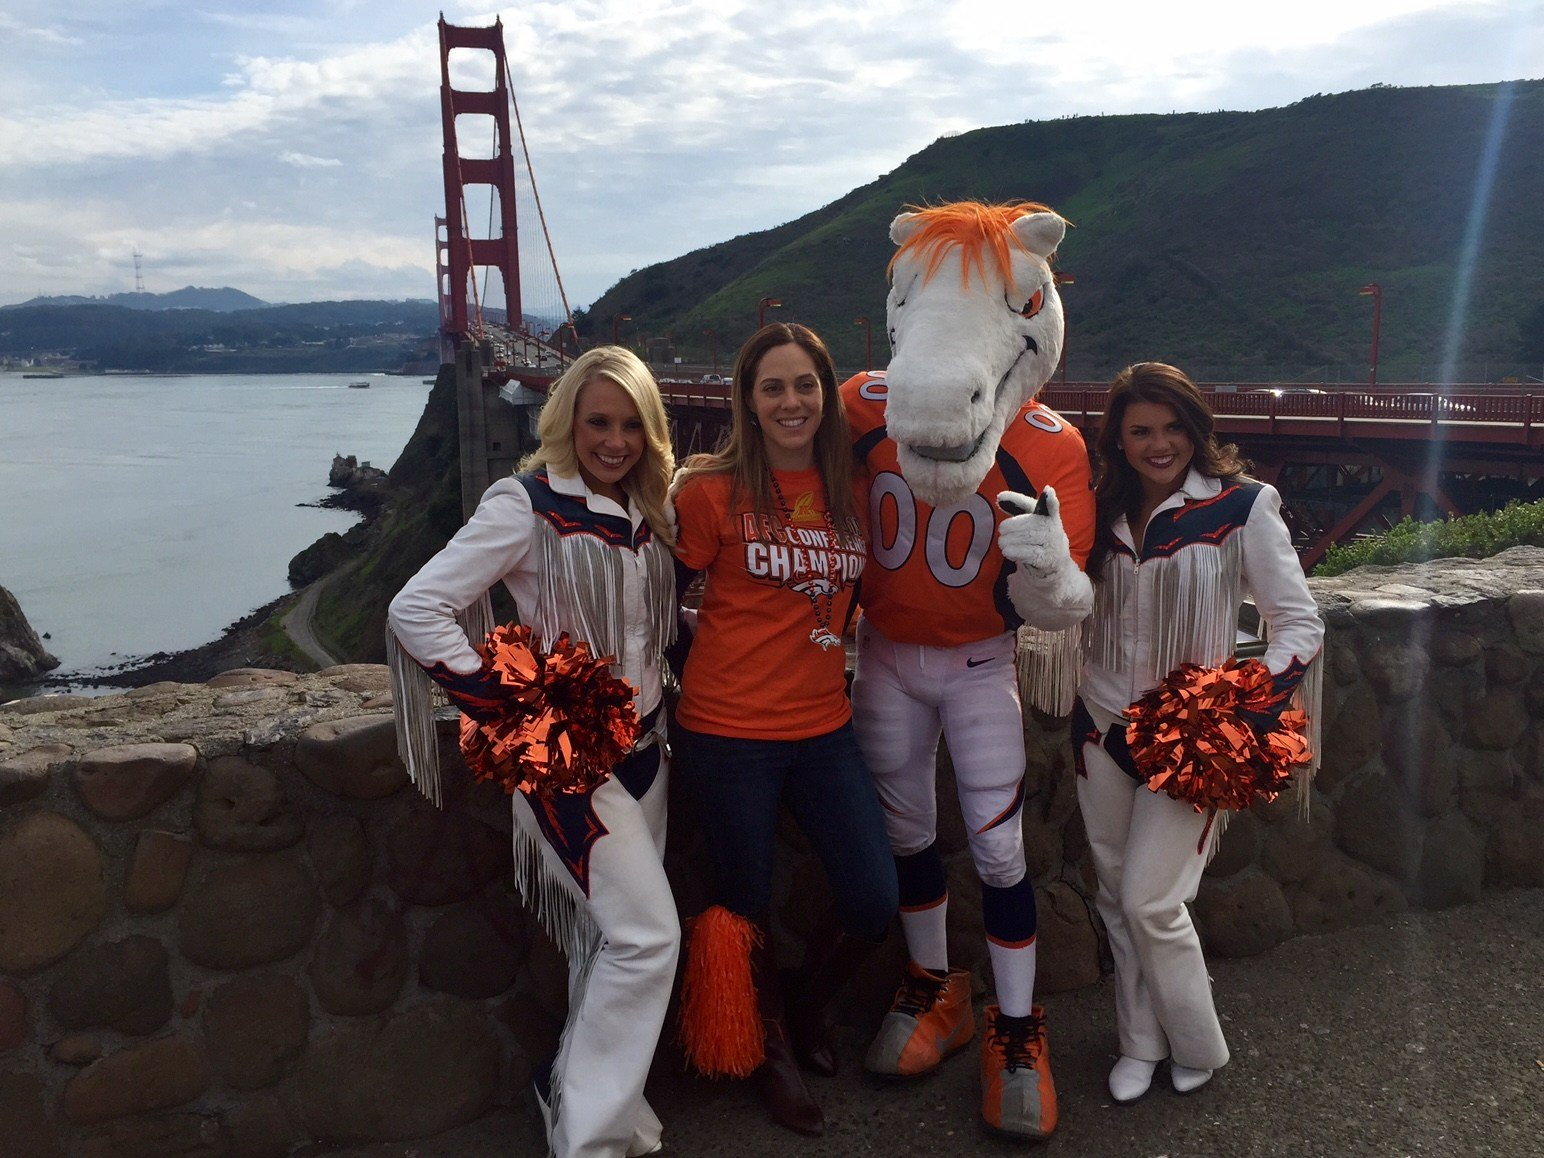 Miles the Mascot and Cheerleaders pose with a Broncos fan looking over the Golden Gate Bridge